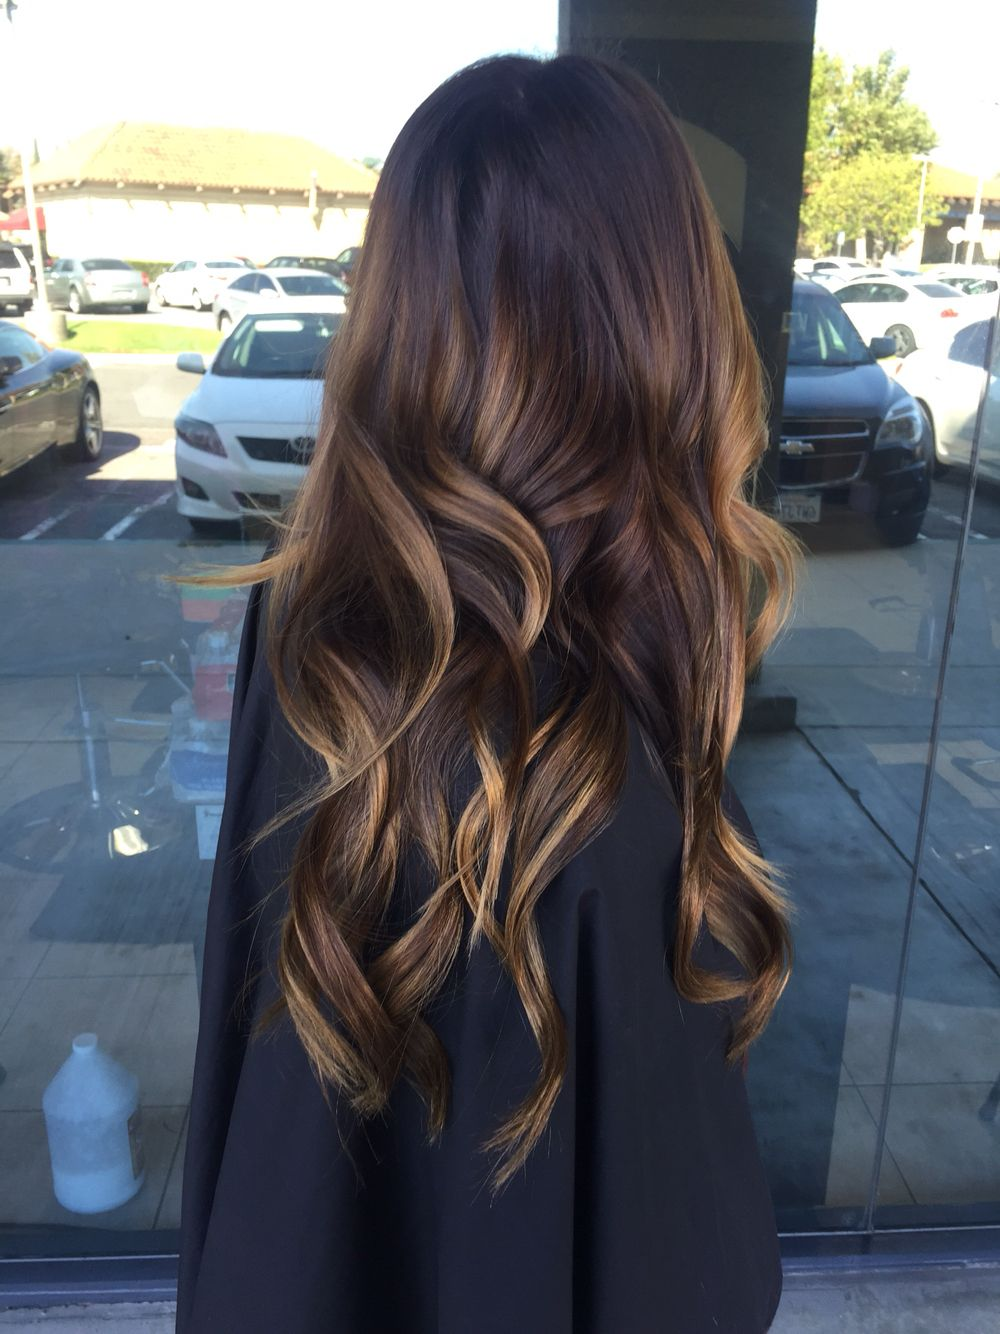 Ombr Balayage Blonde Sun Kissed Highlights Brown Chestnut